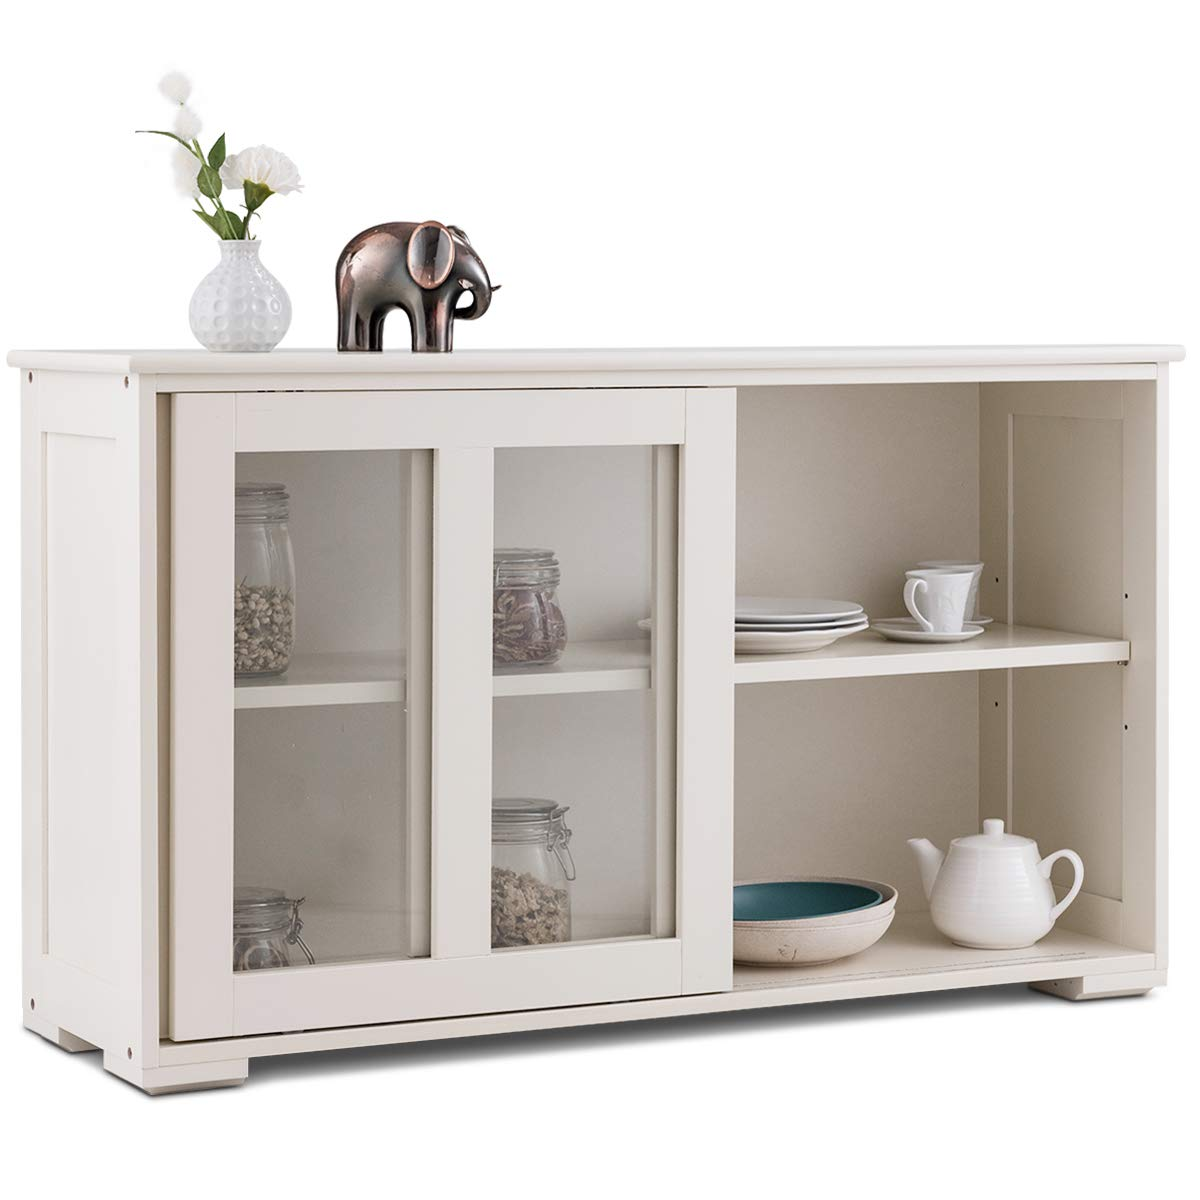 Costzon Kitchen Storage Sideboard, Antique Stackable Cabinet for Home Cupboard Buffet Dining Room (with Sliding Door Window)